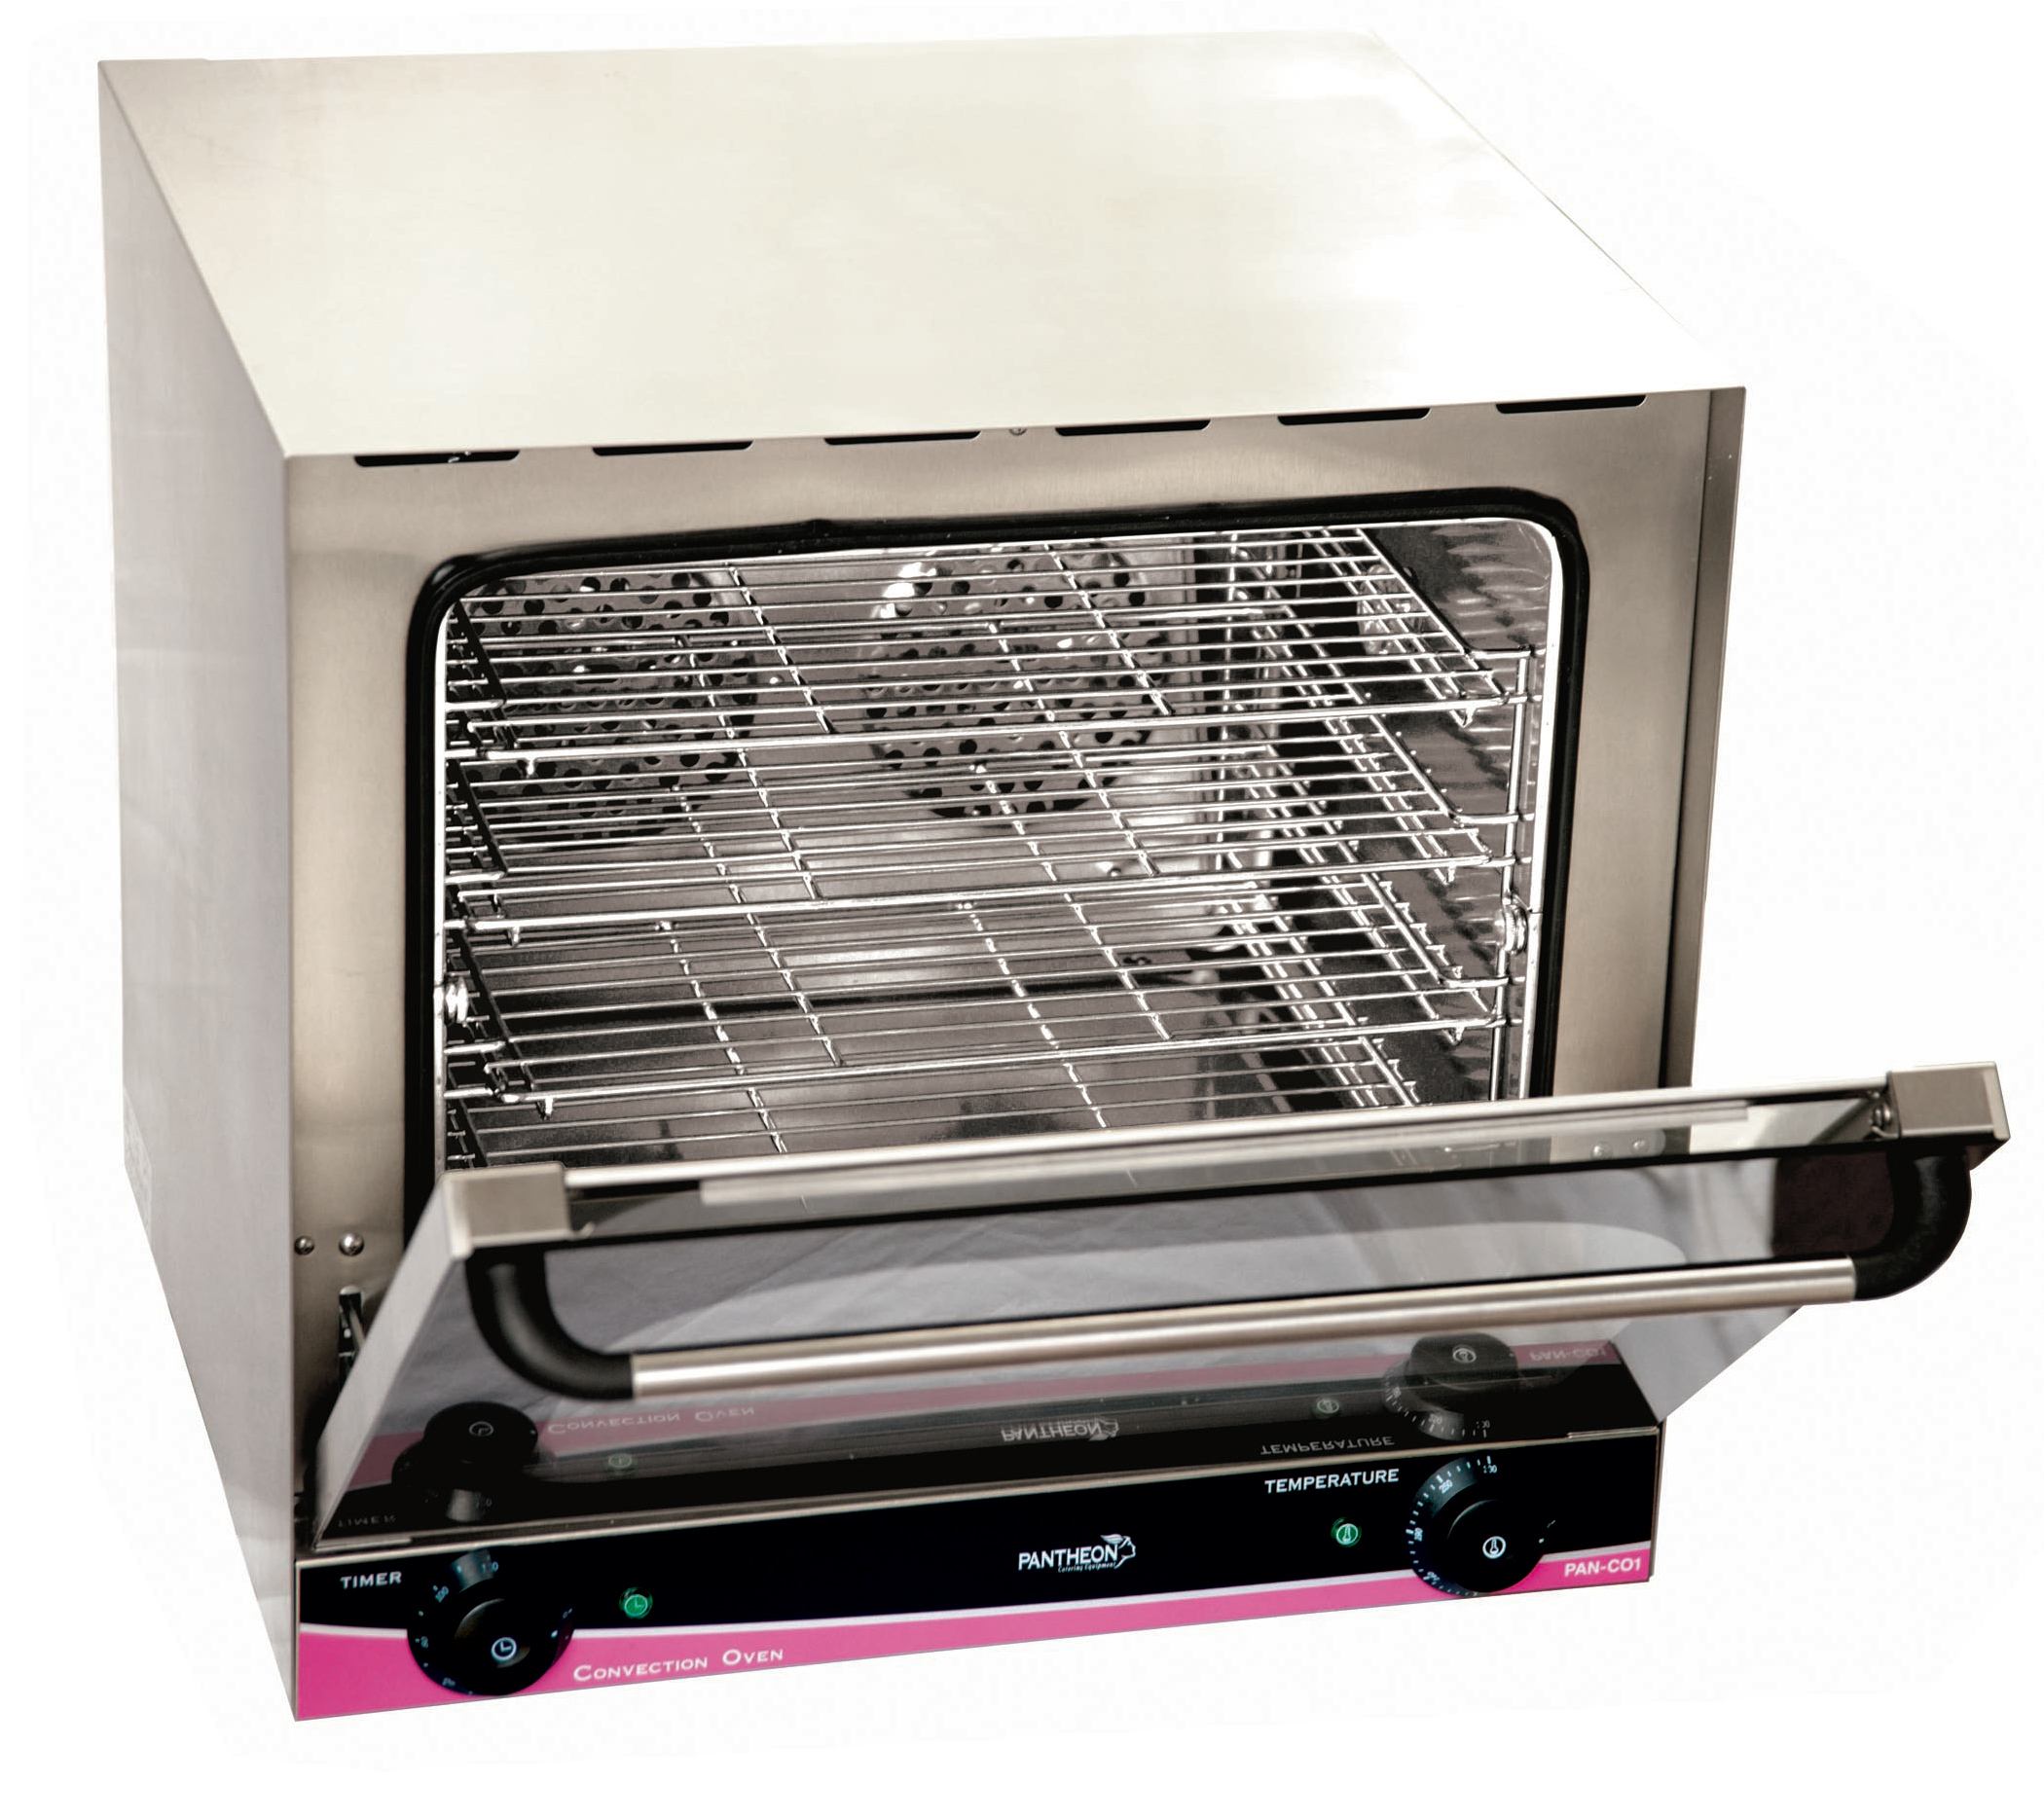 co1 convection oven pantheon catering equipment. Black Bedroom Furniture Sets. Home Design Ideas